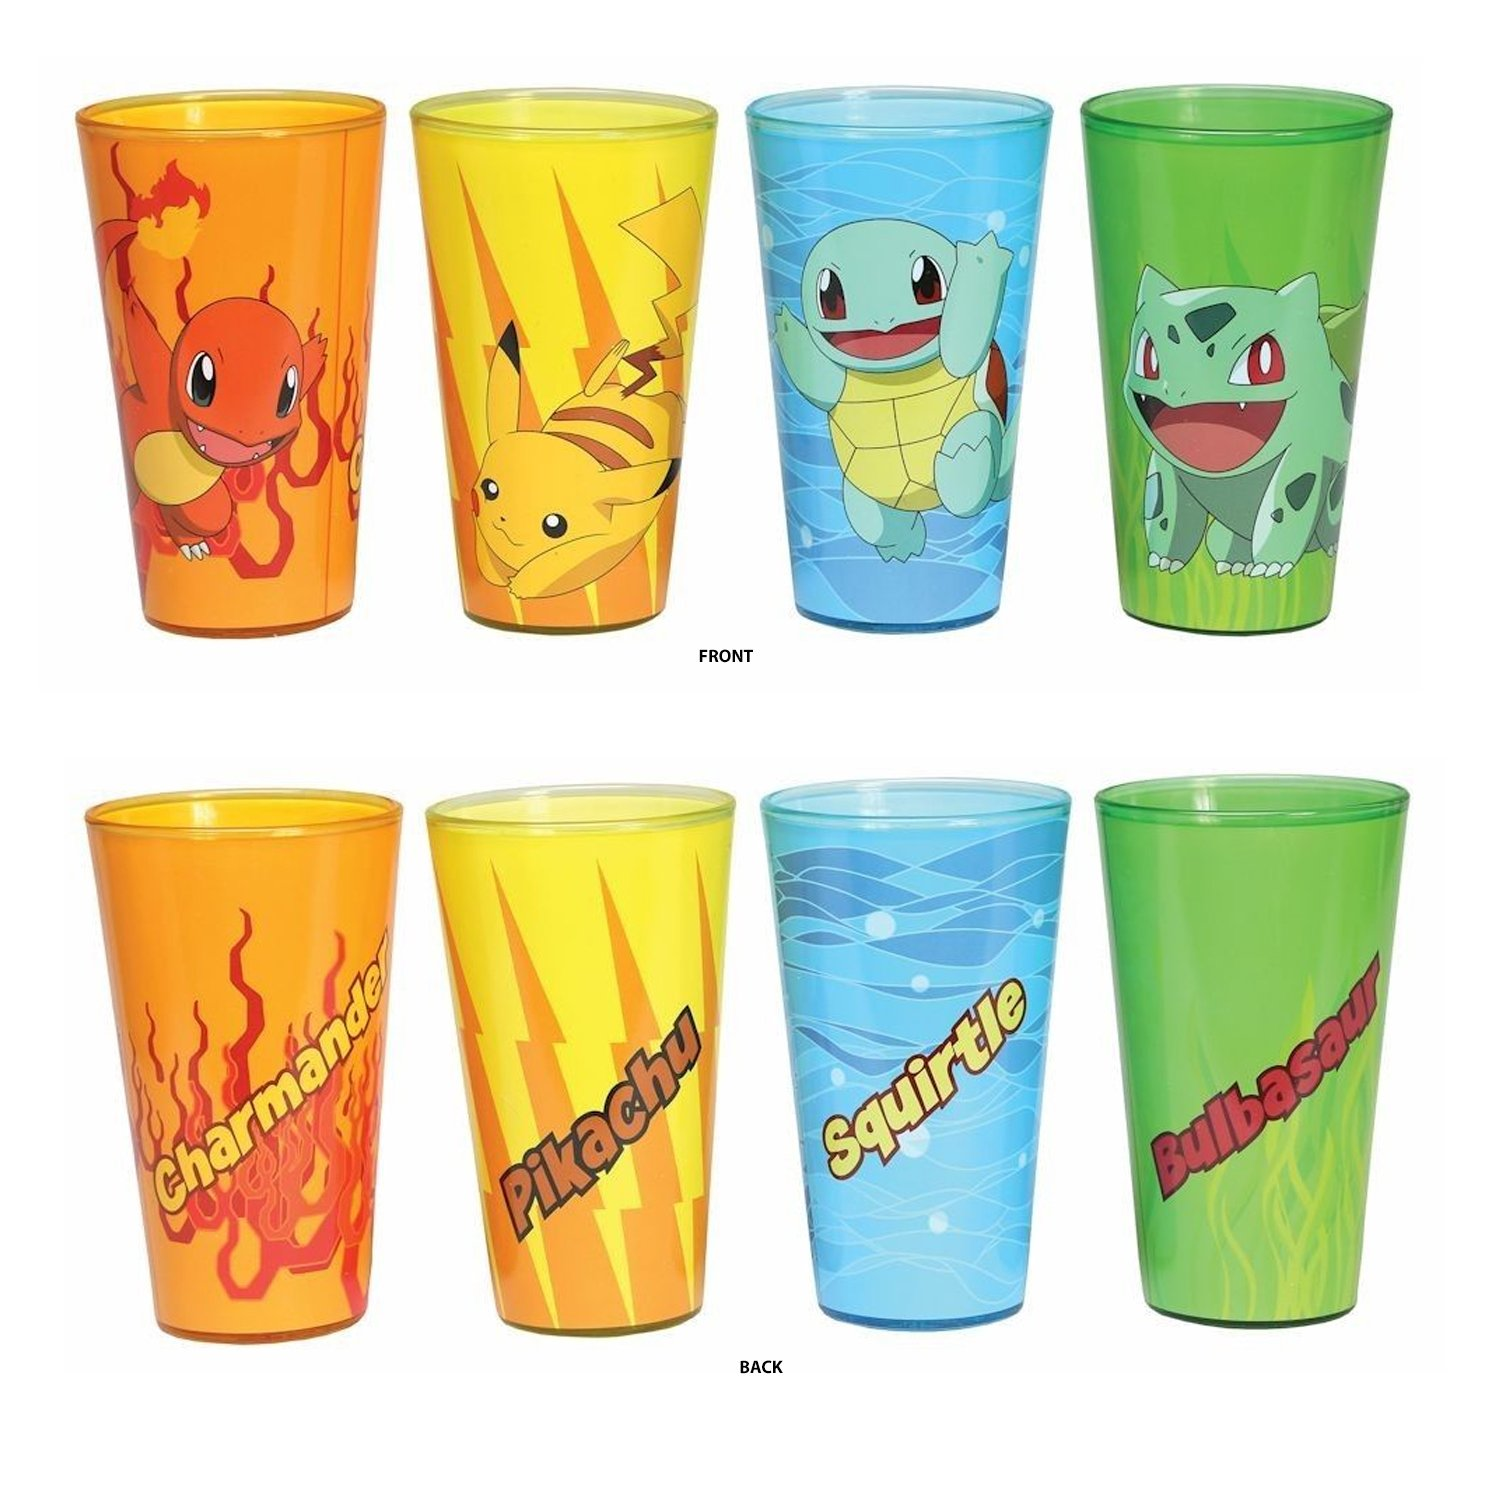 4 PACK Pokemon OFFICIAL Original 4 Starters - Charmander, Bulbasaur, Squirtle, Pikachu Pint Glass Set, 16oz Multicolored Just Funky SYNCHKG129033